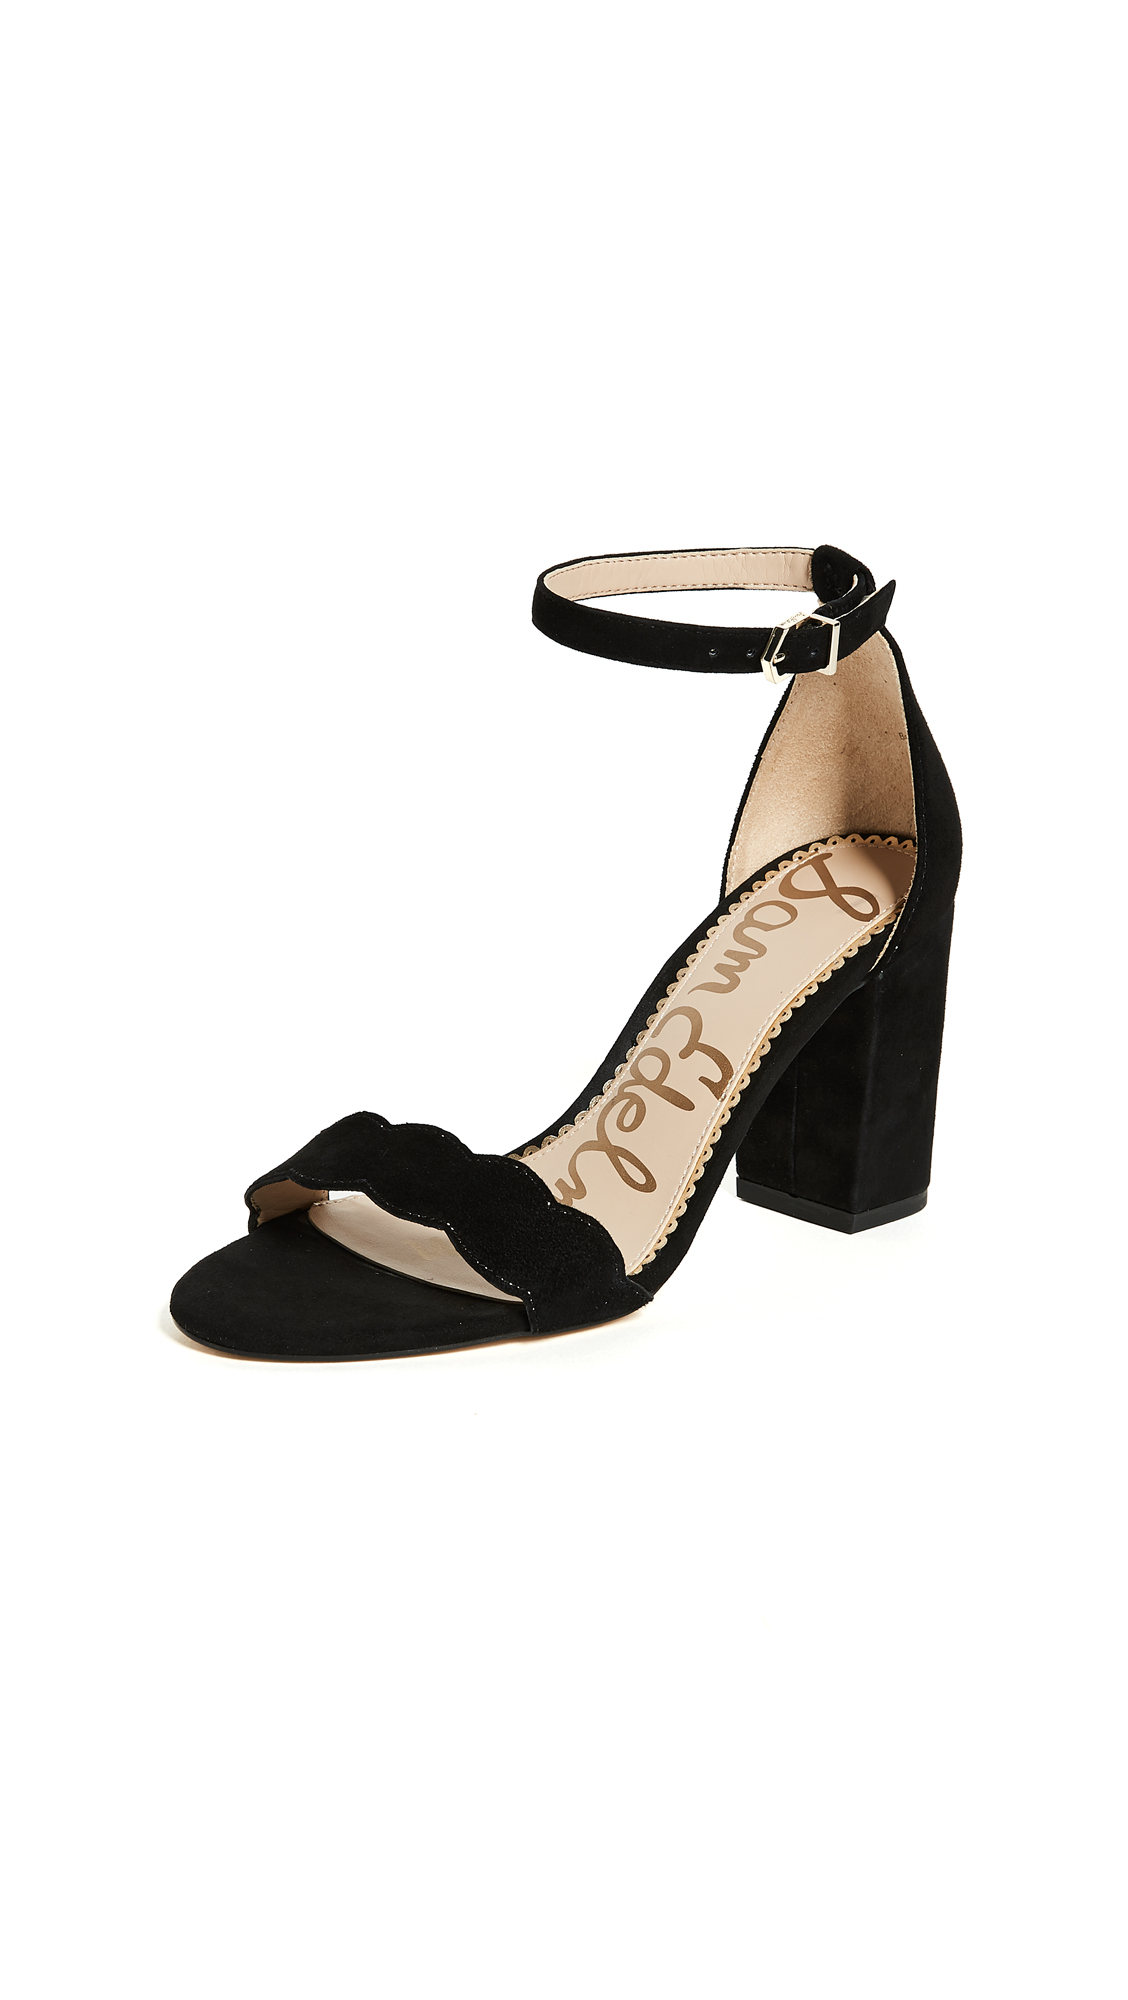 Sam Edelman Odila Sandals - Black